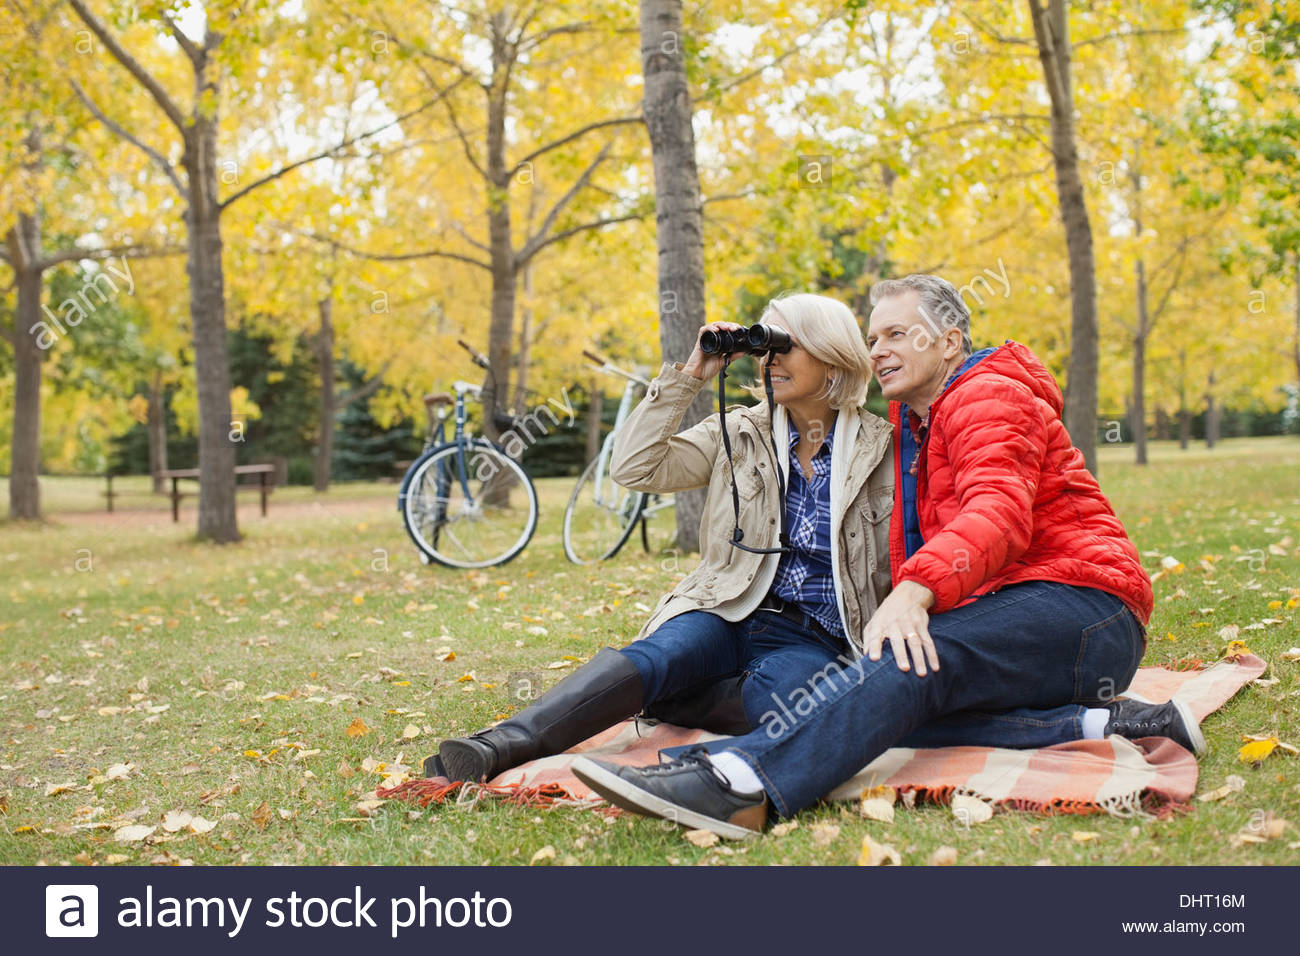 Full length of mature man with woman looking through binoculars at park - Stock Image